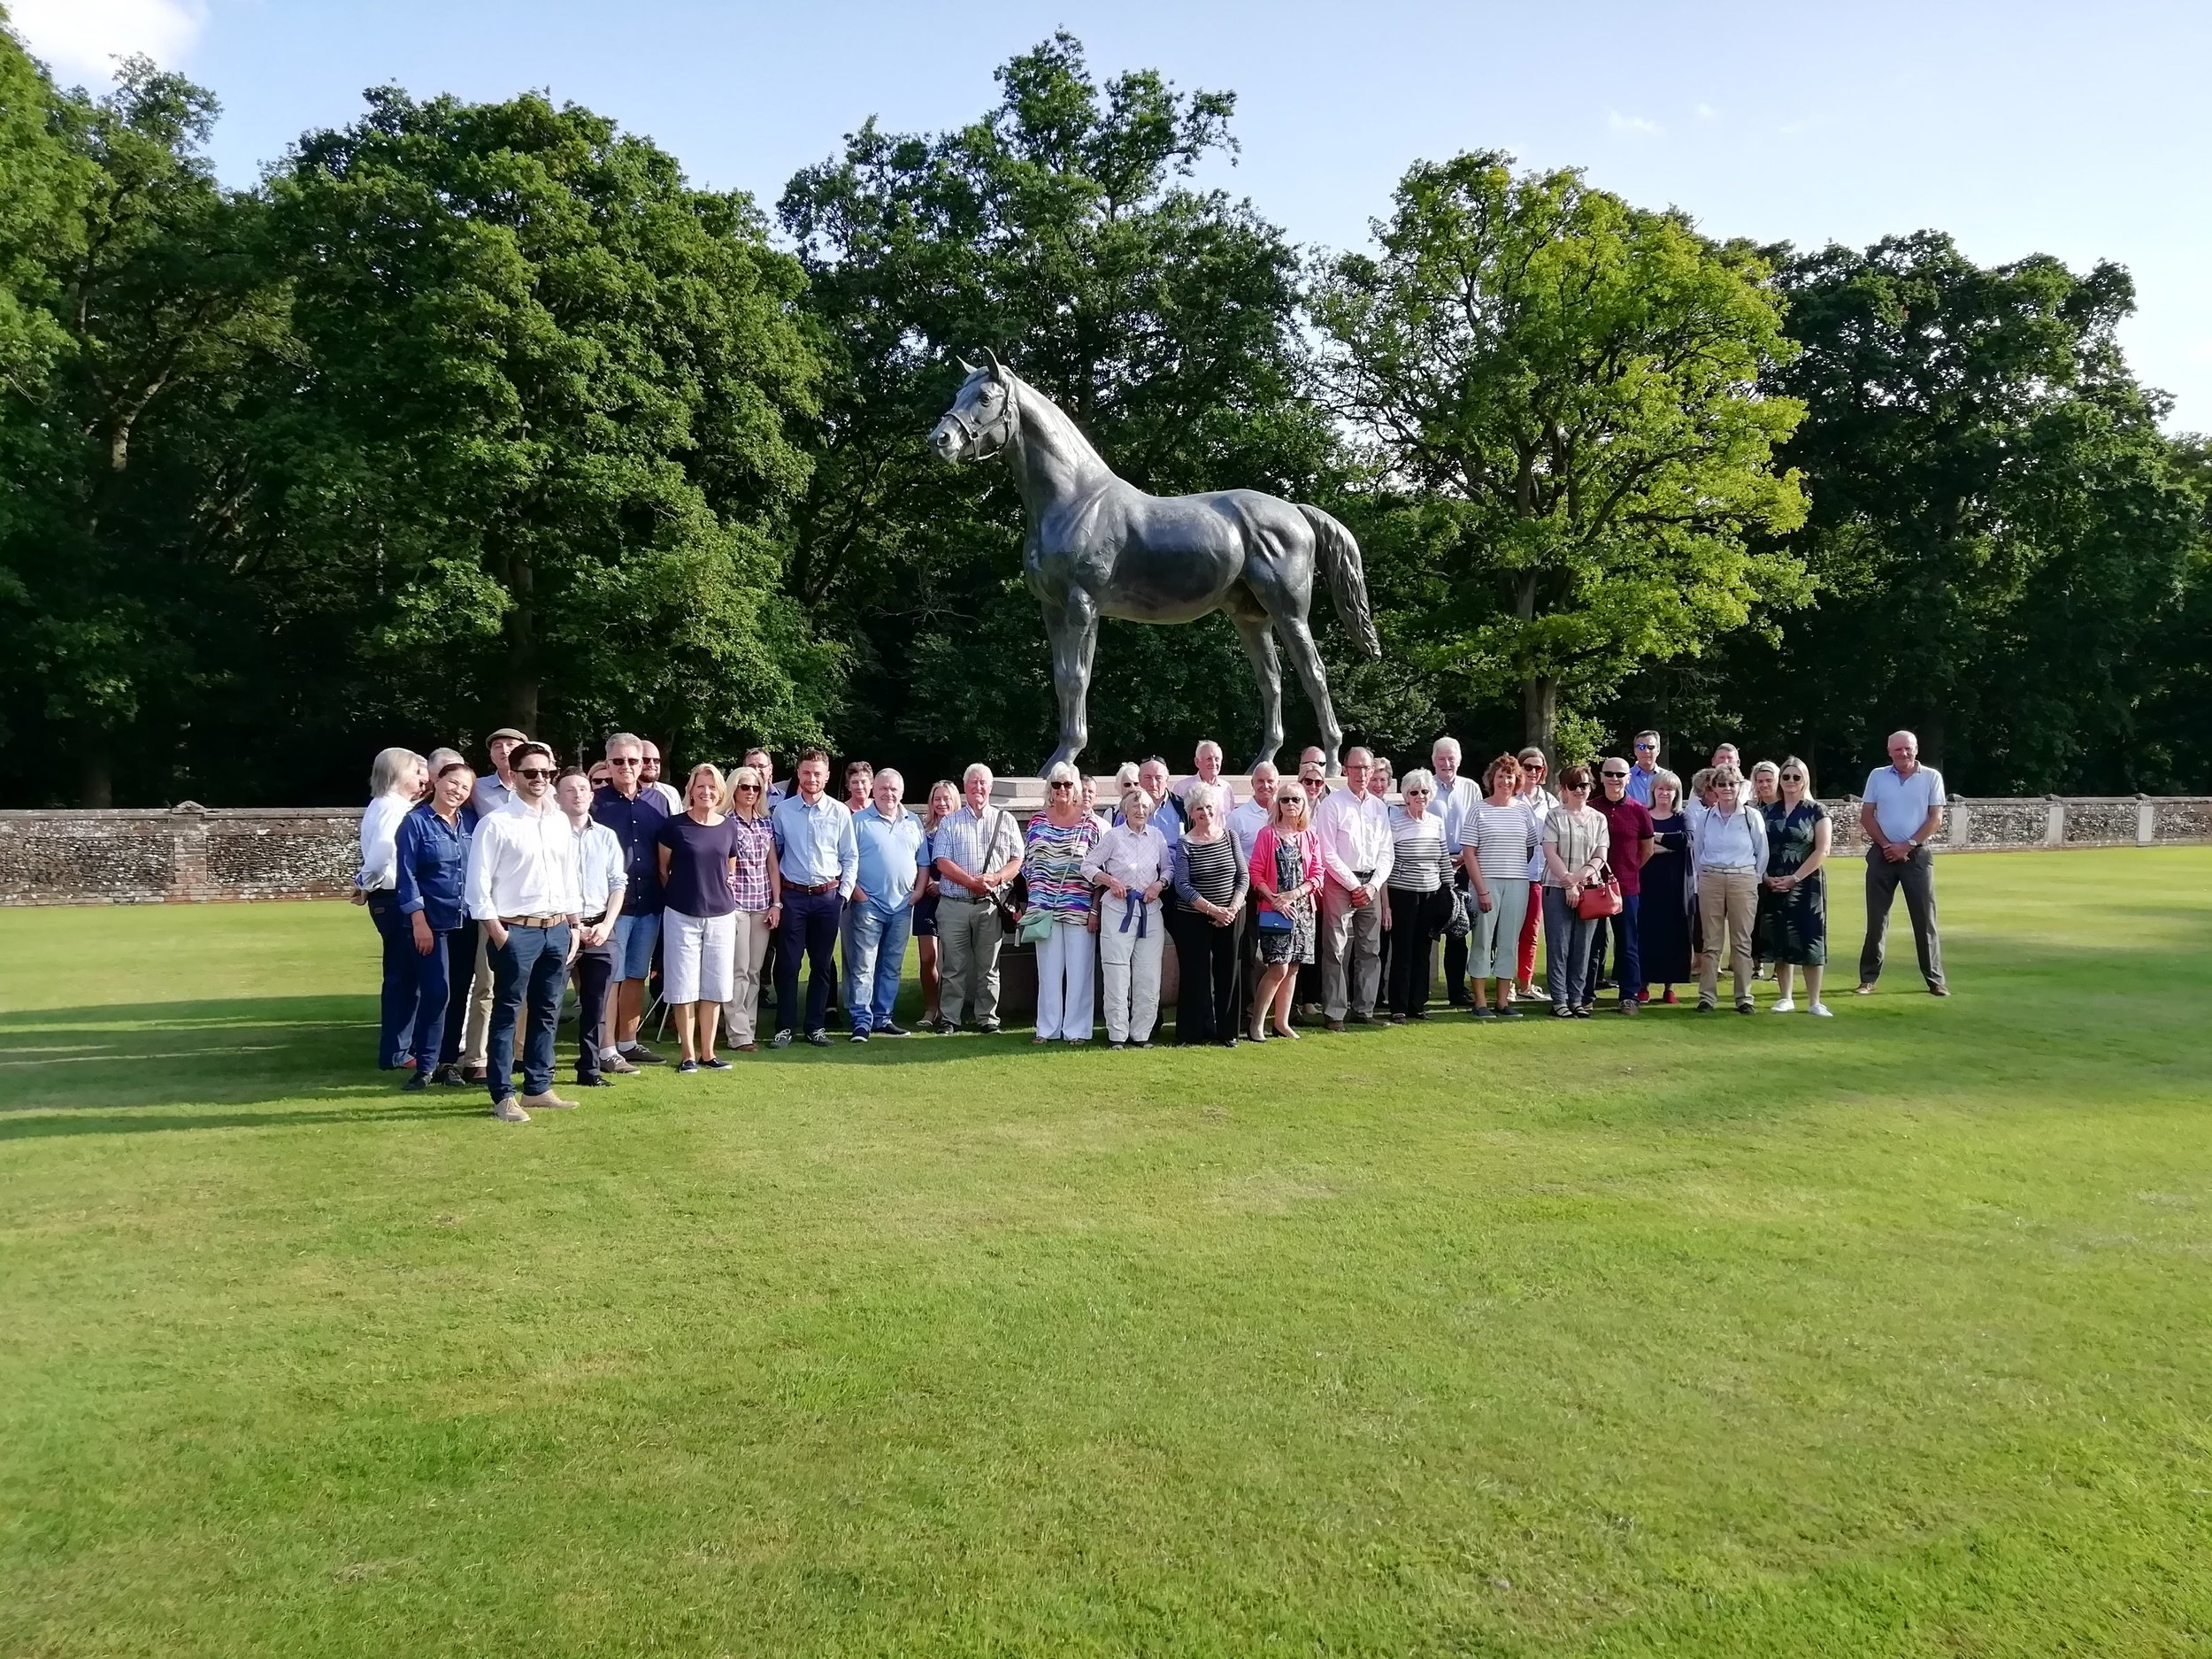 The stud visitors standing in front of Persimmon, winner of the Derby in 1896, owned by the Prince of Wales.